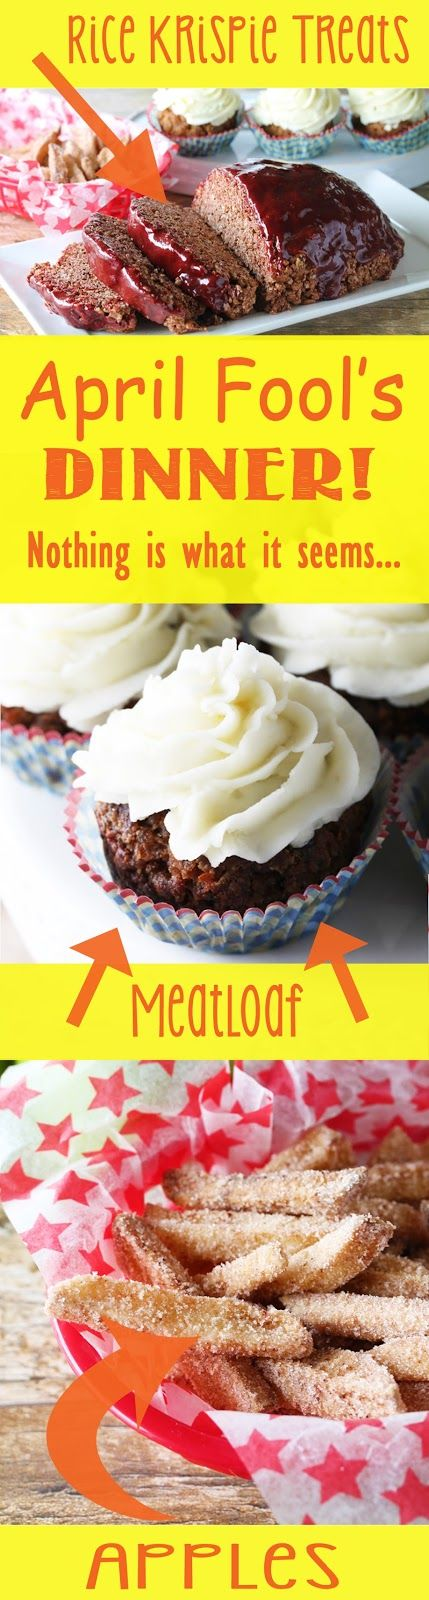 A fun and tasty April Fool's Day Dinner Idea where nothing is quite as it seems. Meatloaf cupcakes with mashed potato frosting, apple fries, and Cocoa Krispies mock meatloaf.